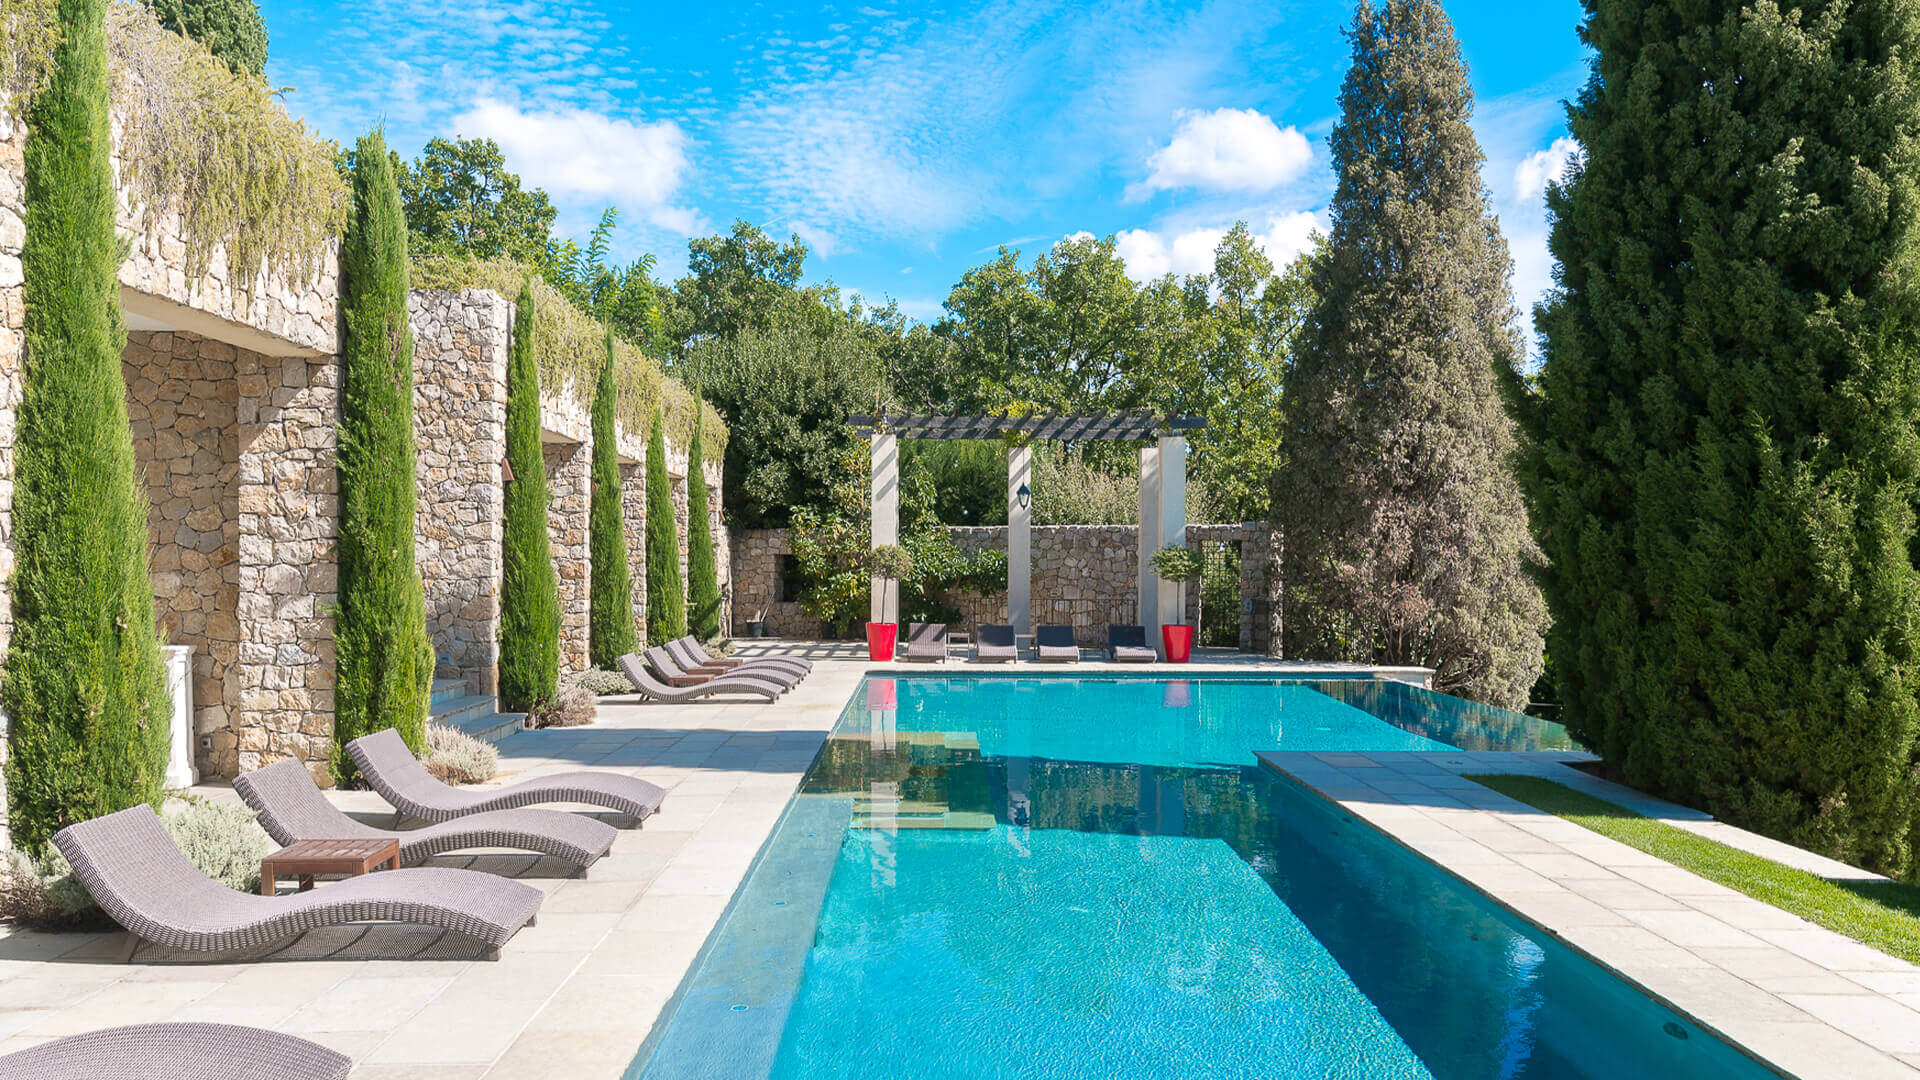 Bastide Provencale swimming pool and loungers